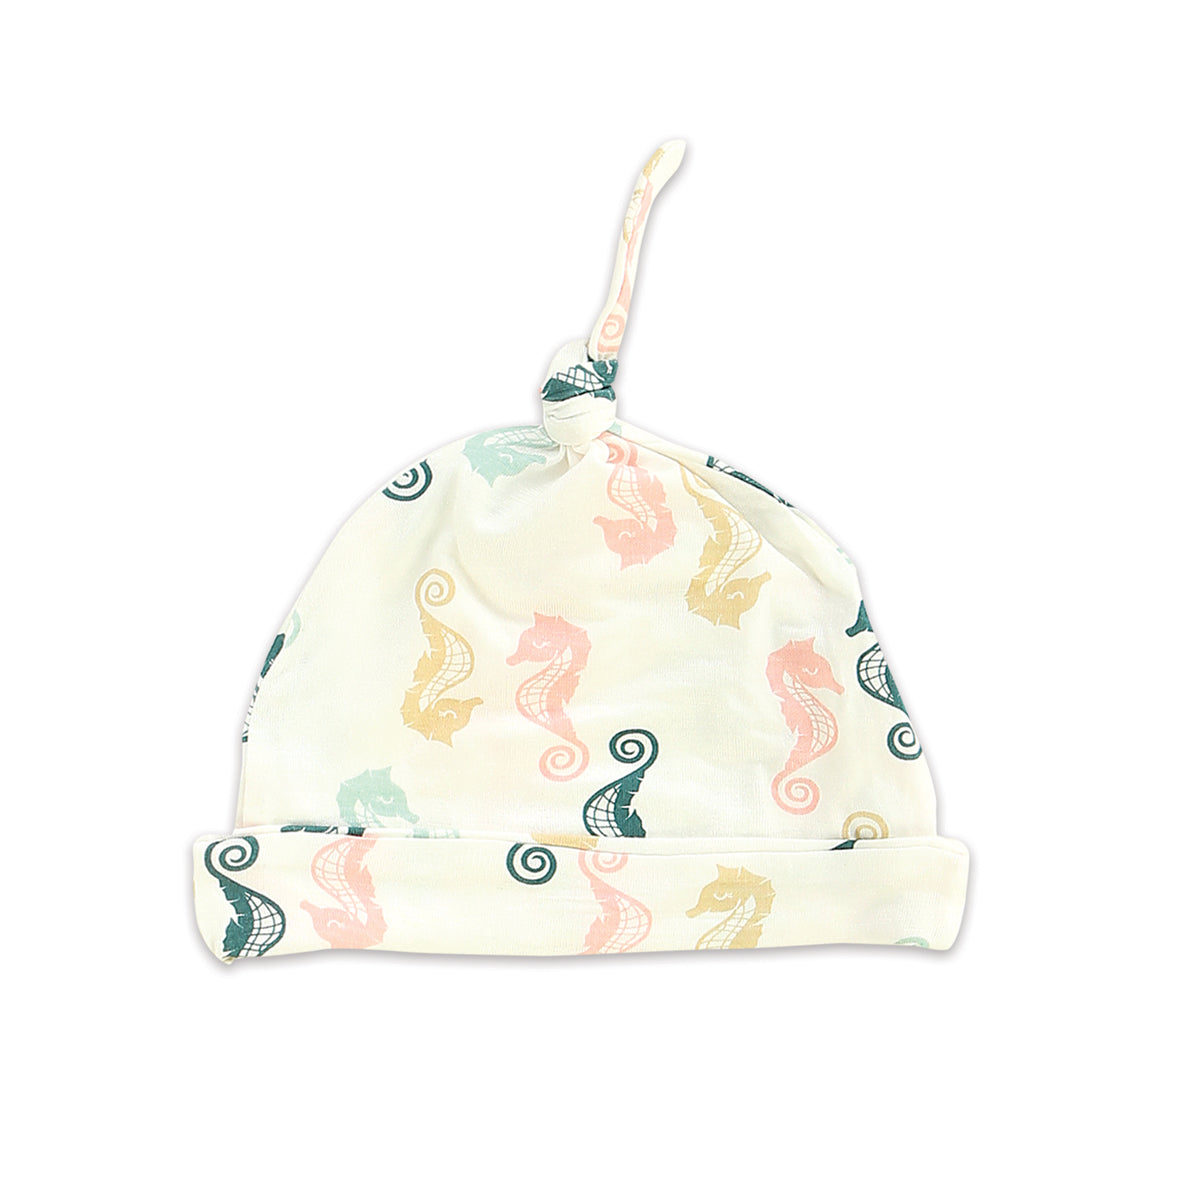 Bamboo Knot Hat - Seahorse Print